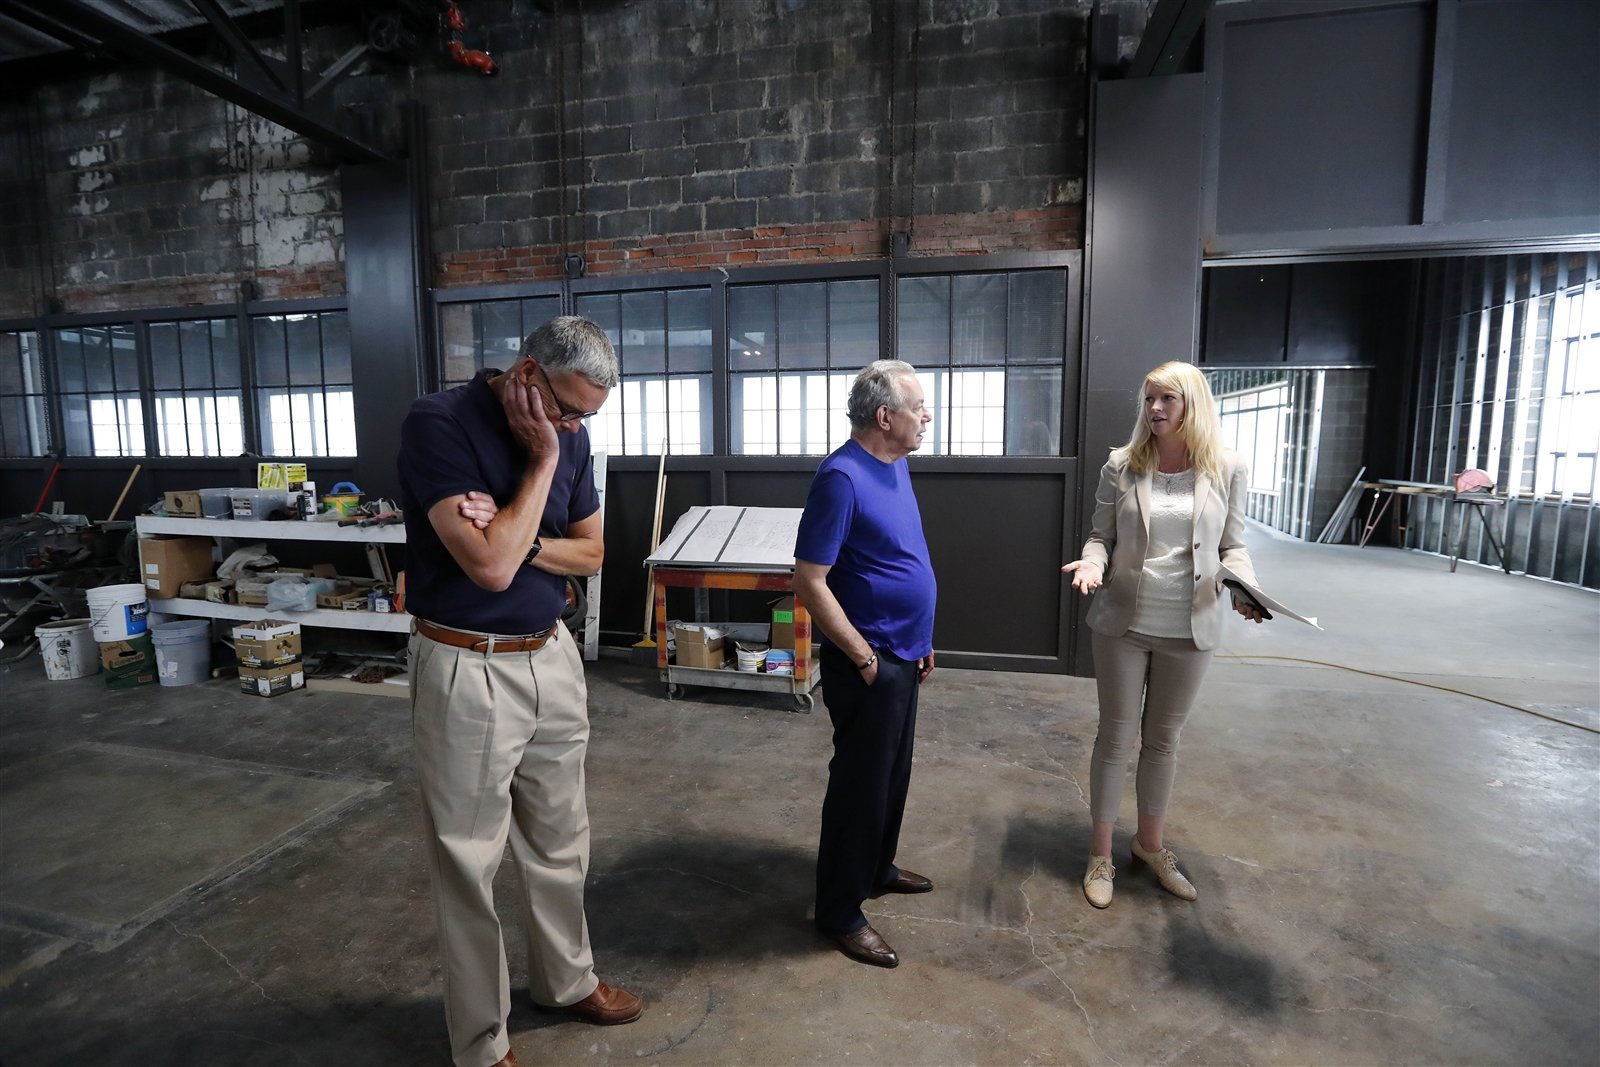 Journey Gunderson and Tom Benson of the National Comedy Center in Jamestown, gives a tour of the soon-to-be-completed facility to comedian Lewis Black in the old train station in Jamestown Thursday, August 3, 2017.